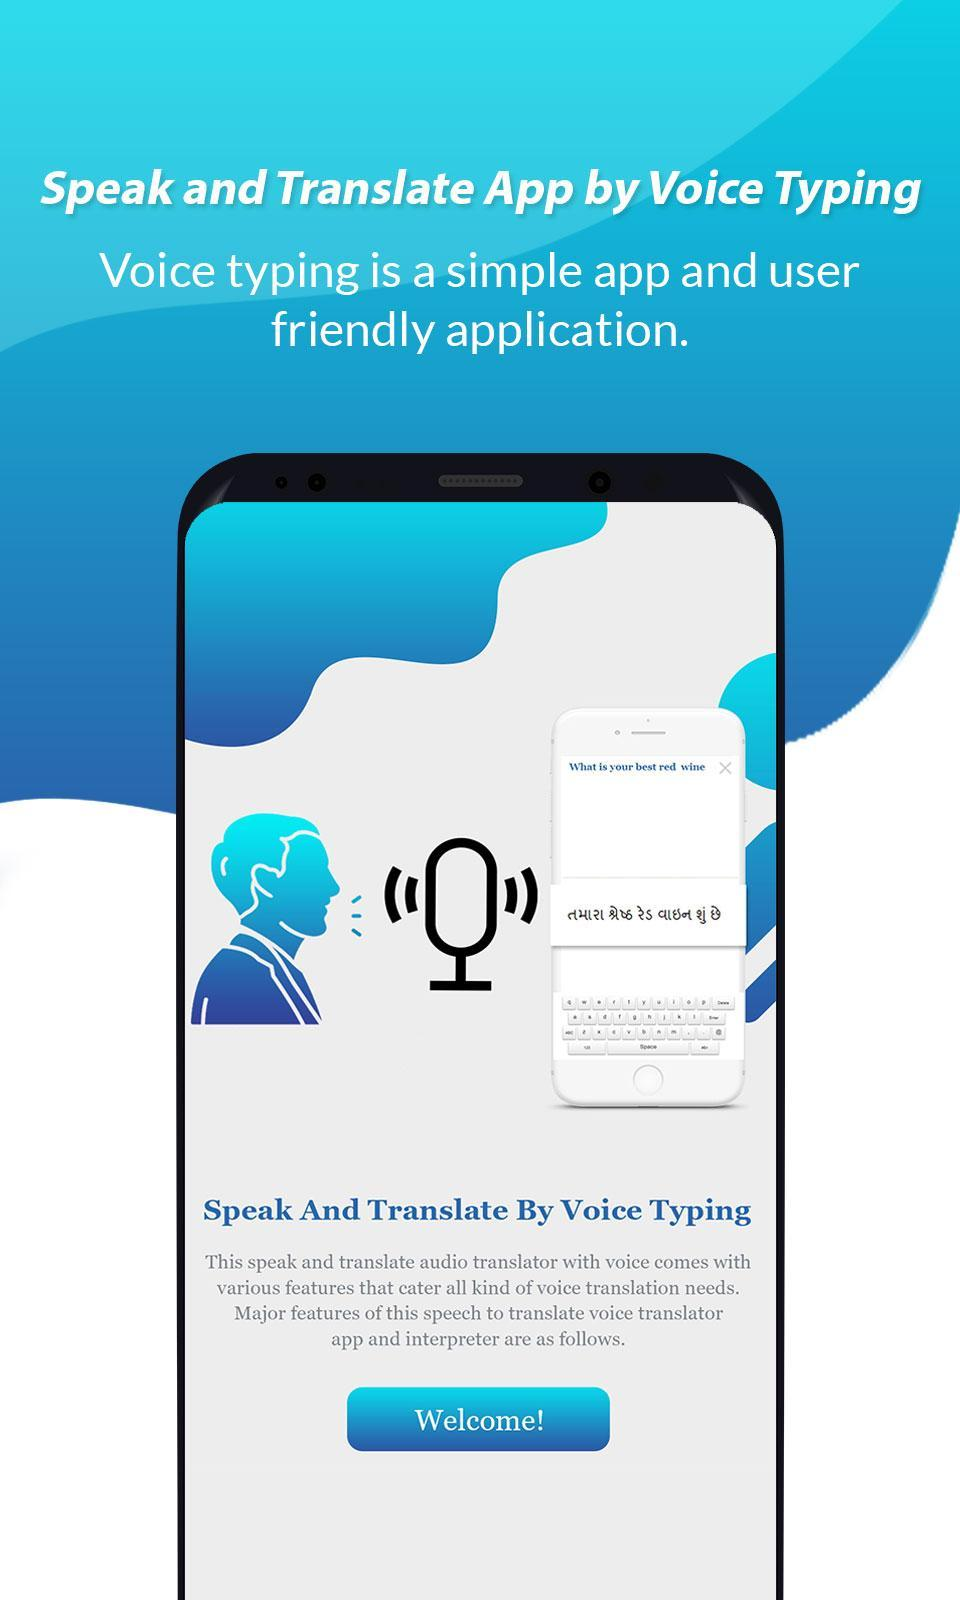 Speak and Translate App Translator by Voice Typing for Android - APK